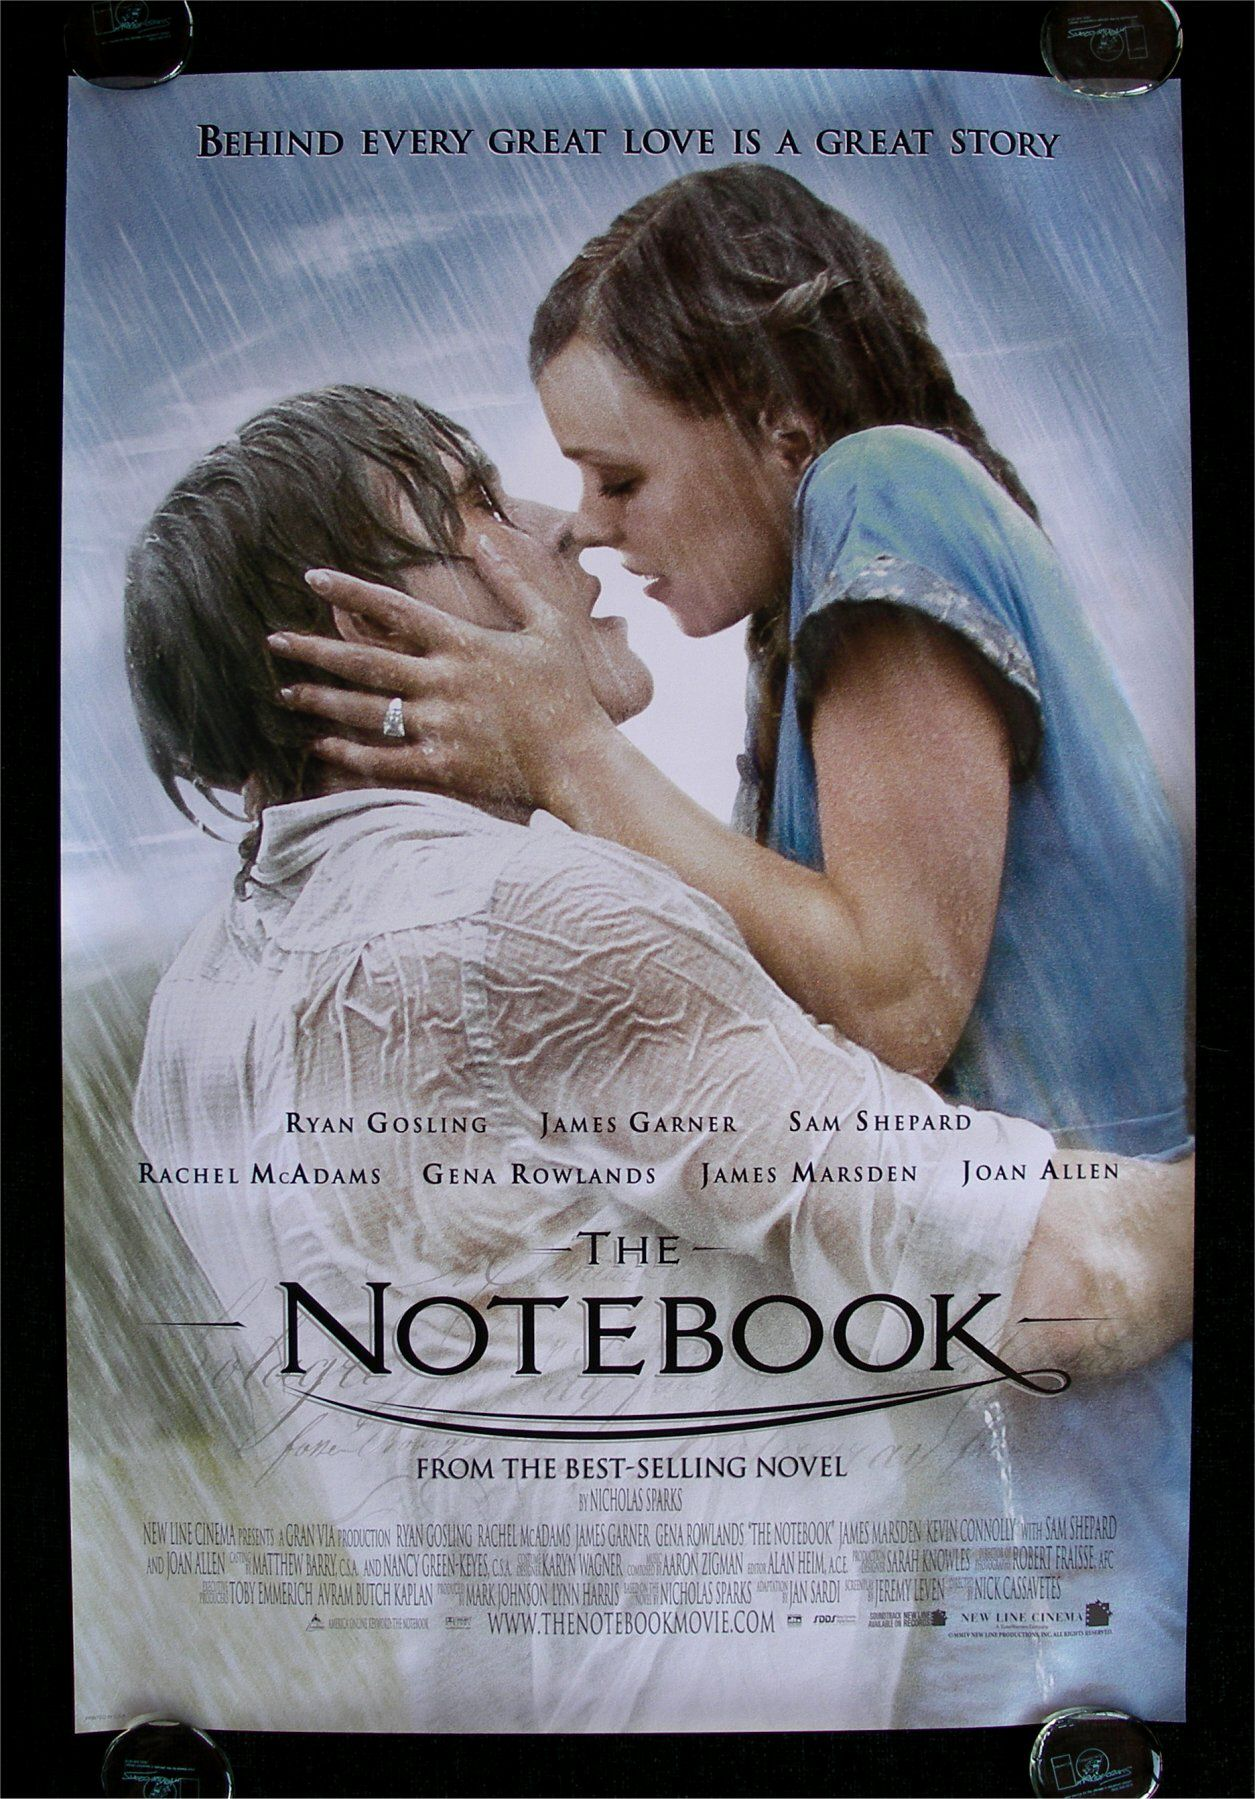 The Notebook|Movie theater